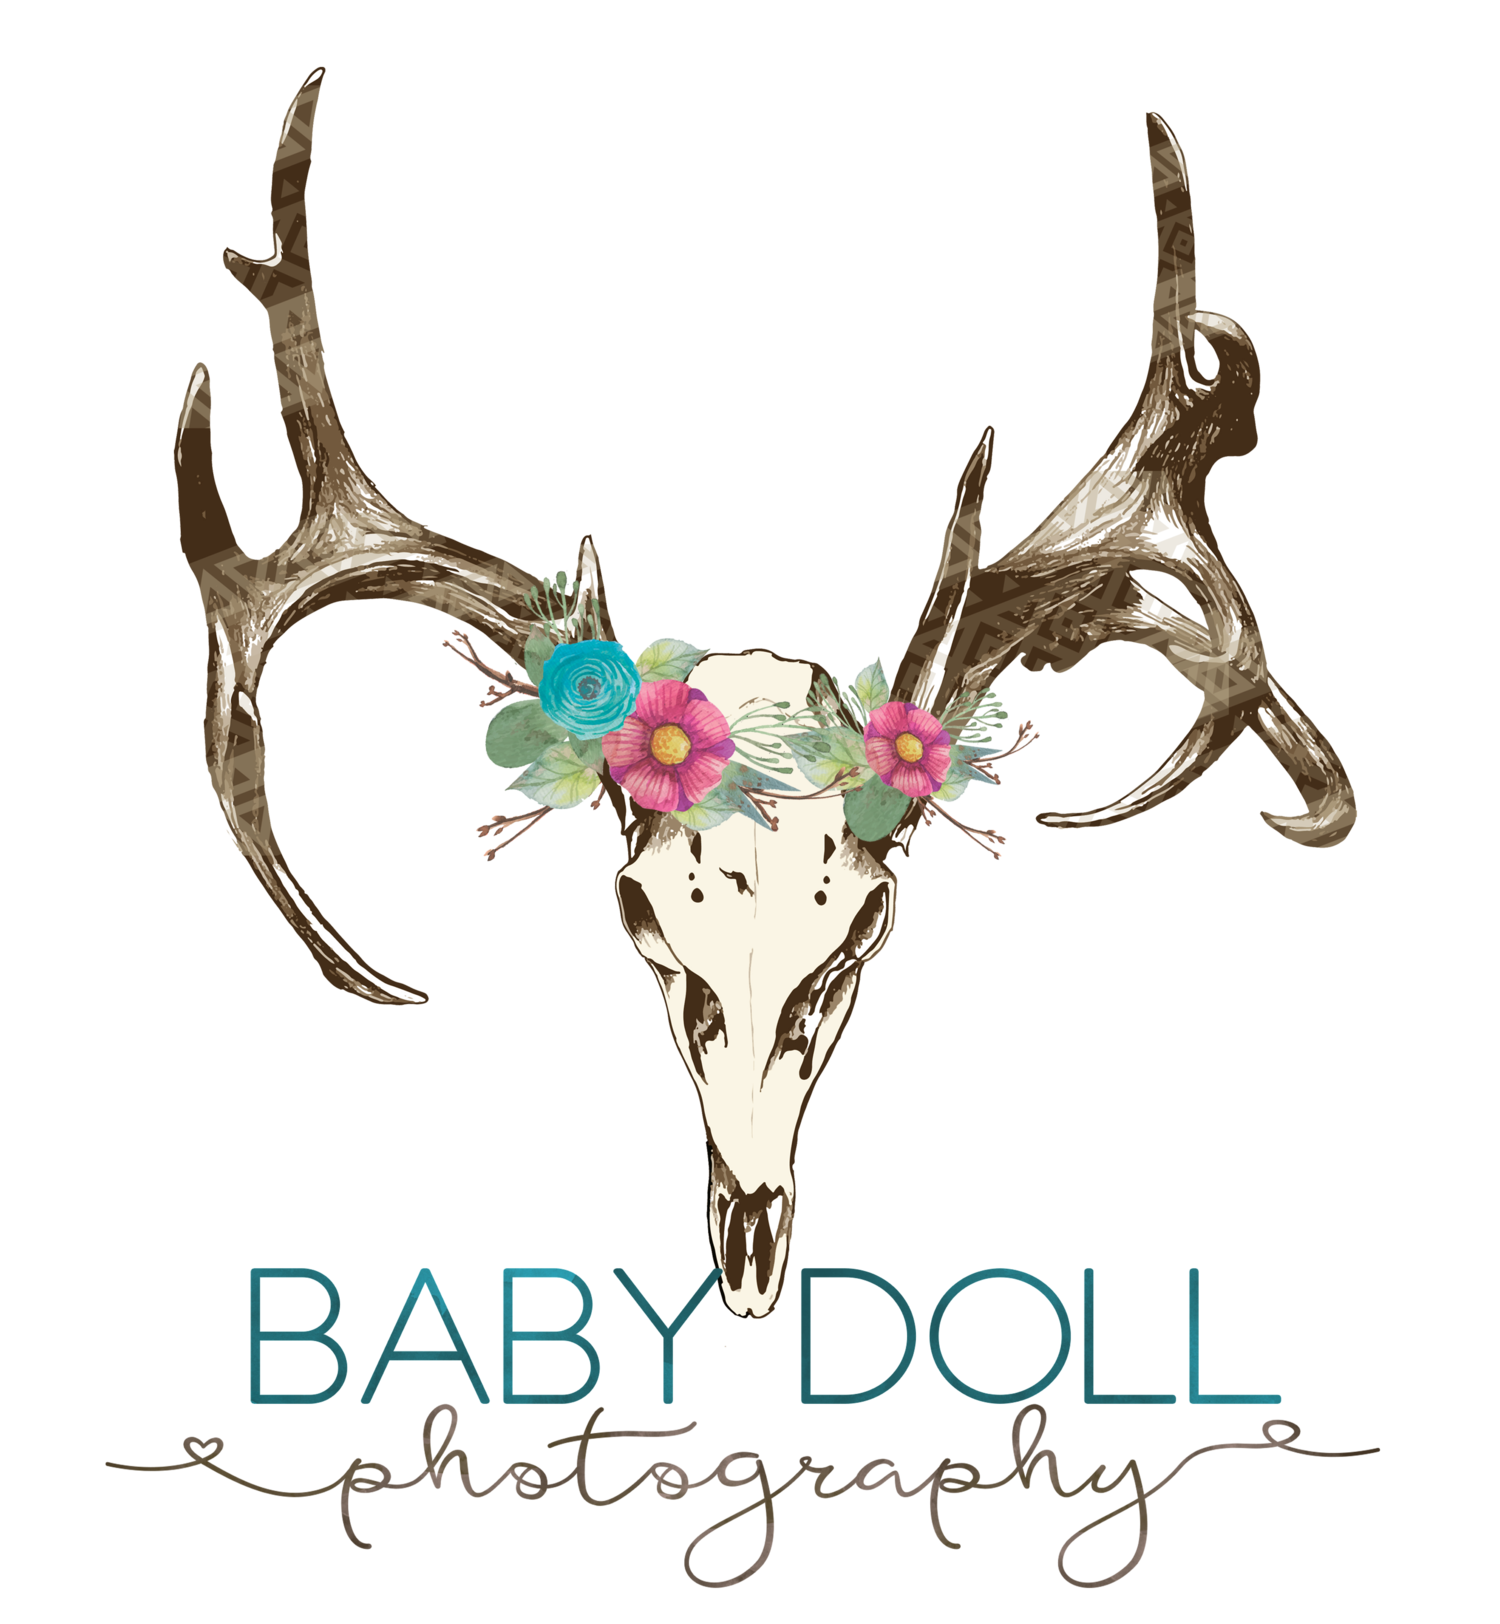 BabyDoll Photography